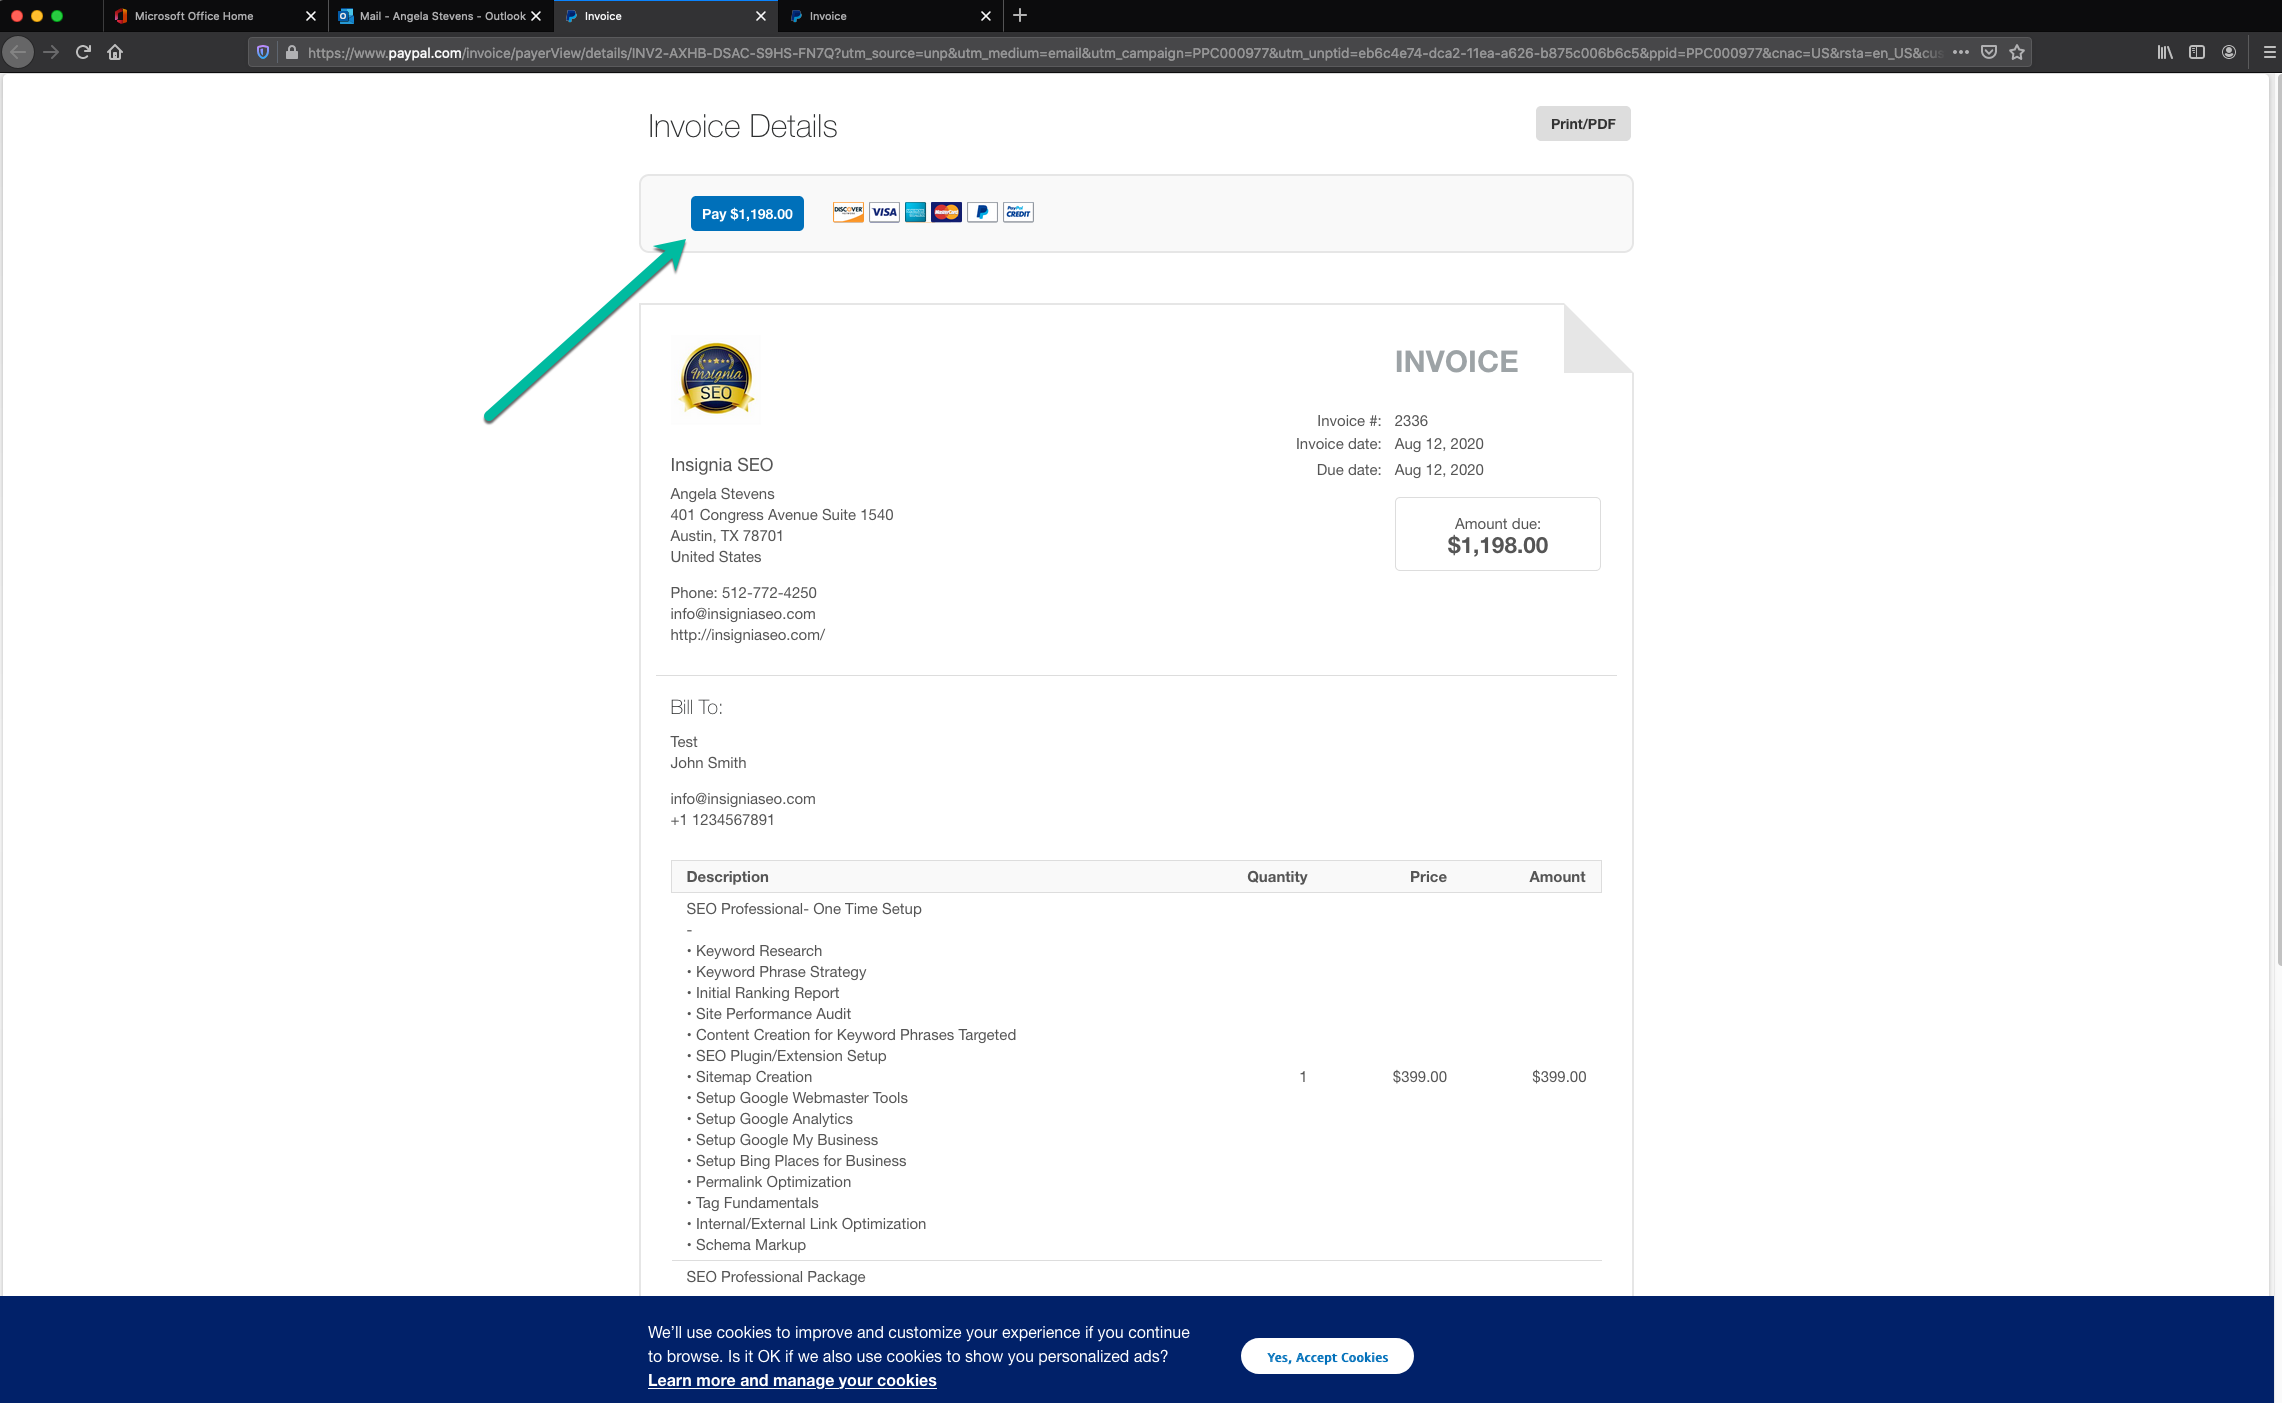 PayPal Invoice 2 - How to Pay a PayPal Invoice